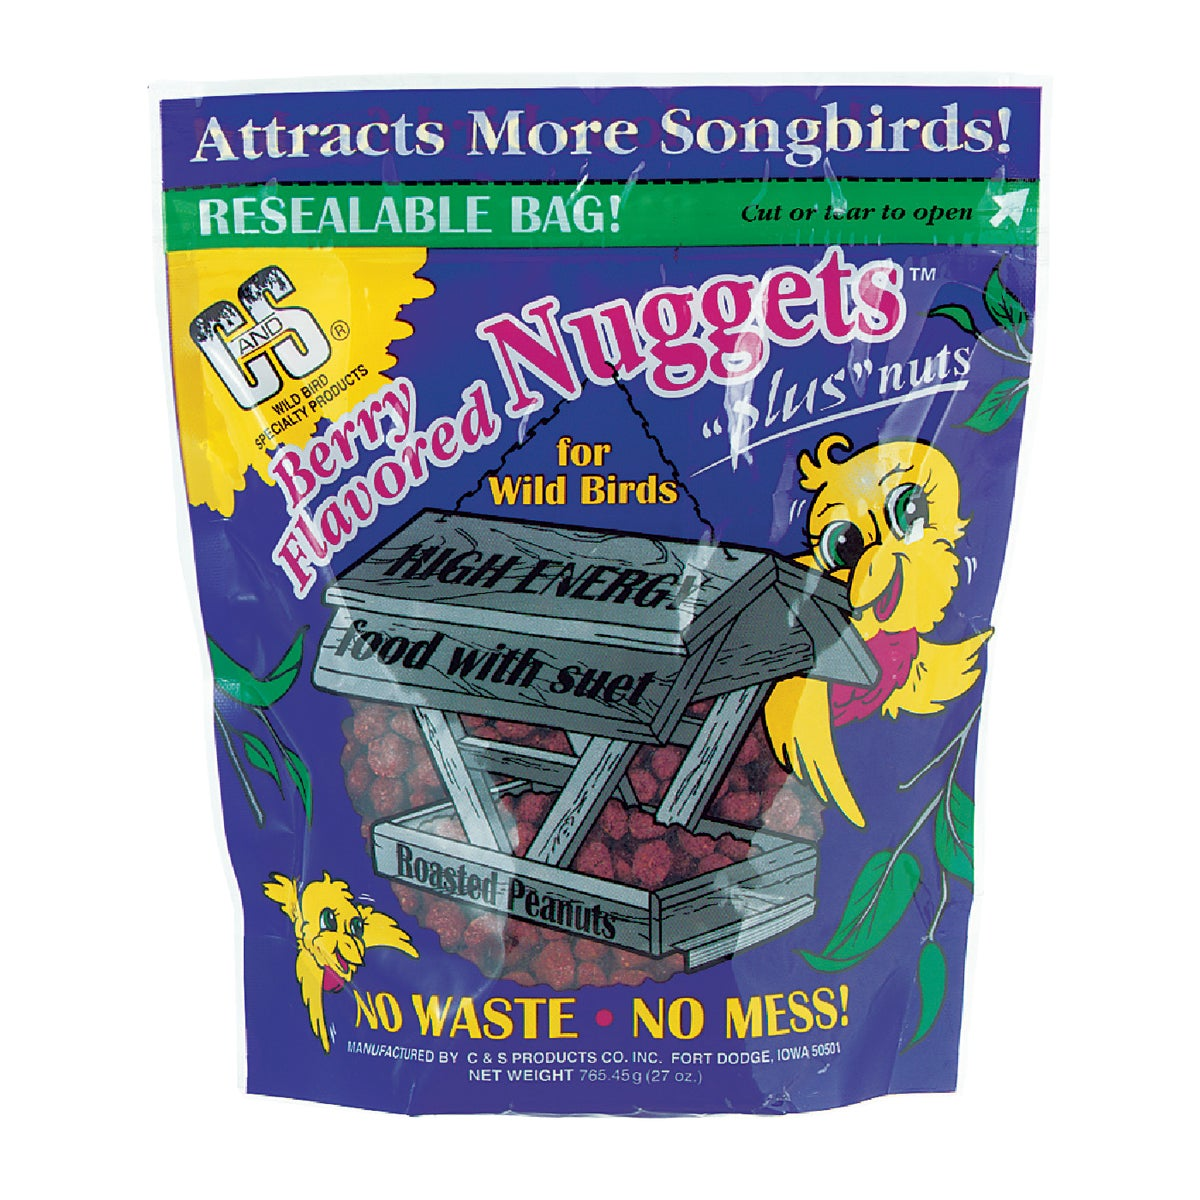 BERRY SUET NUGGETS